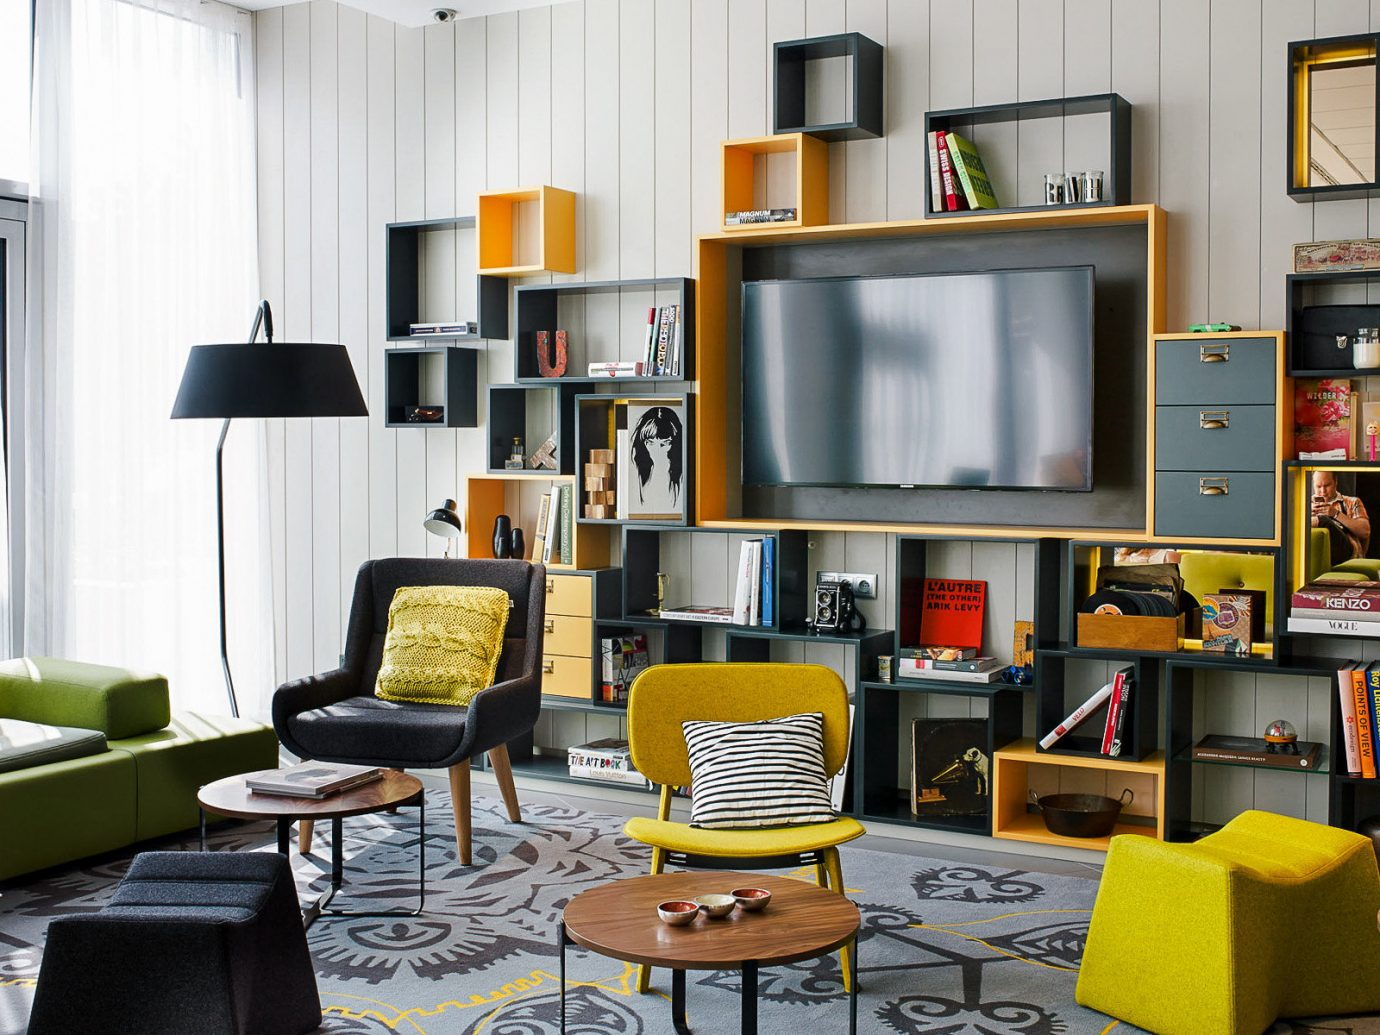 Trip Ideas indoor wall living room furniture room interior design table shelving home chair bookcase office interior designer